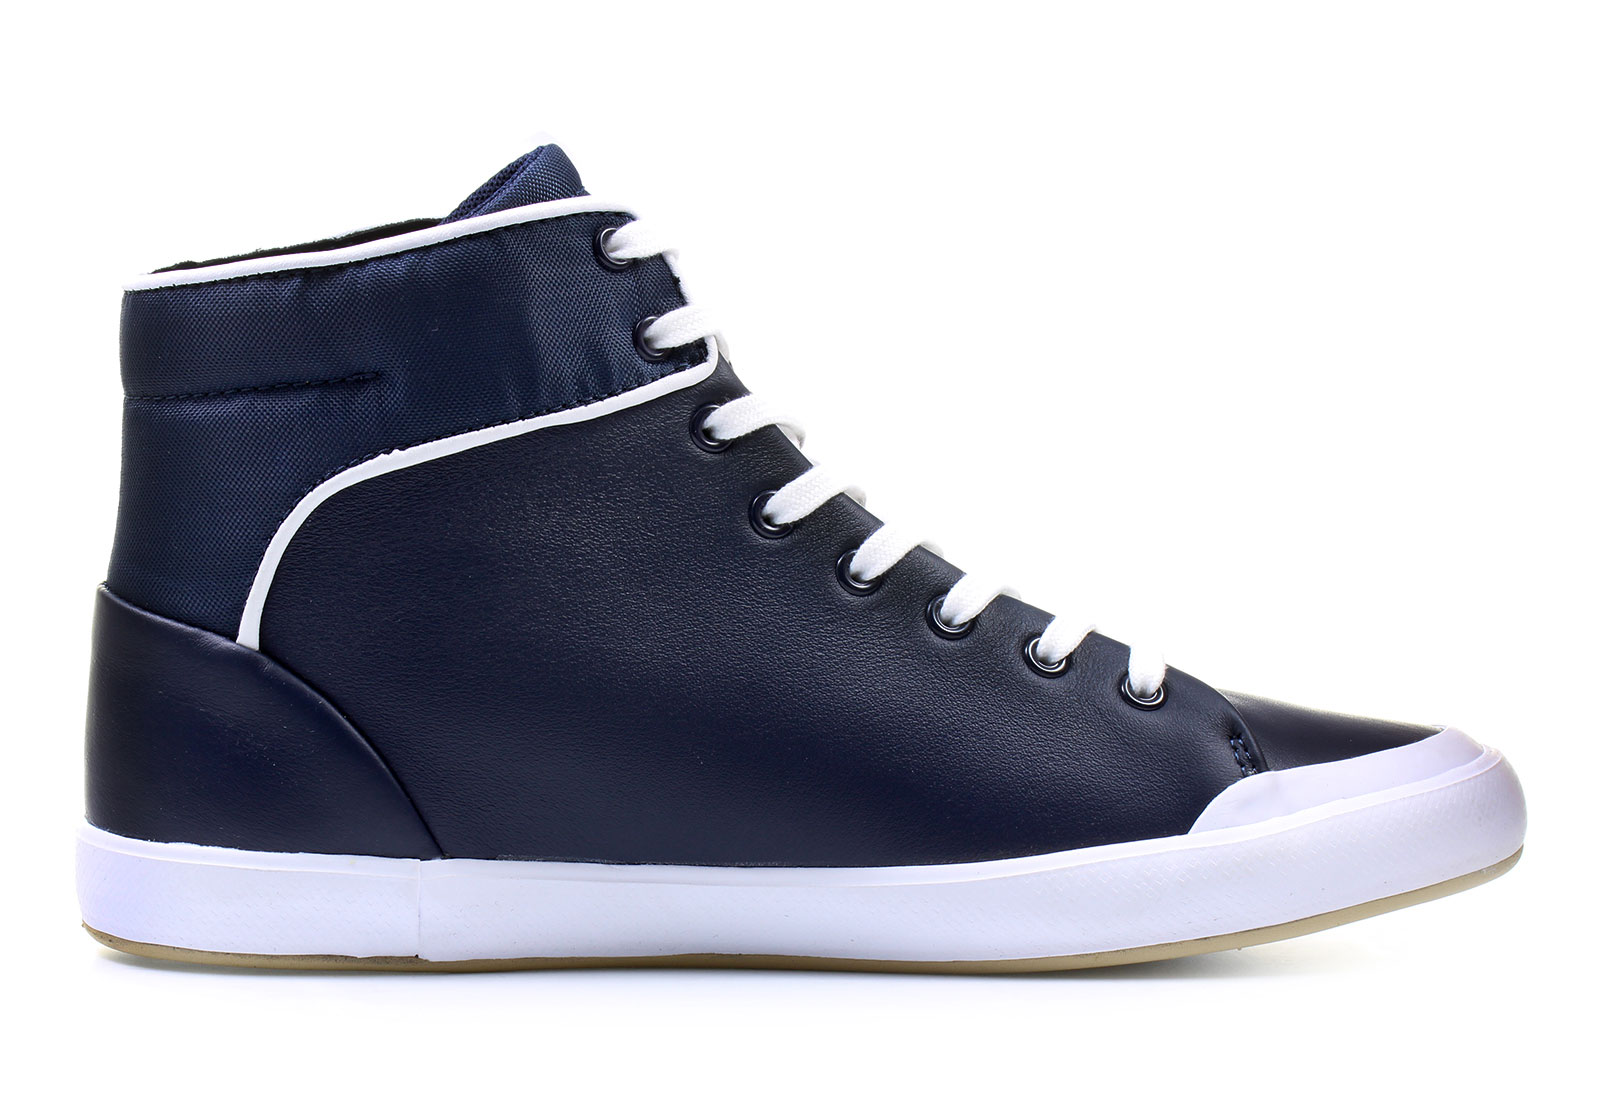 lacoste shoes lancelle hi top 1 163spw0166003